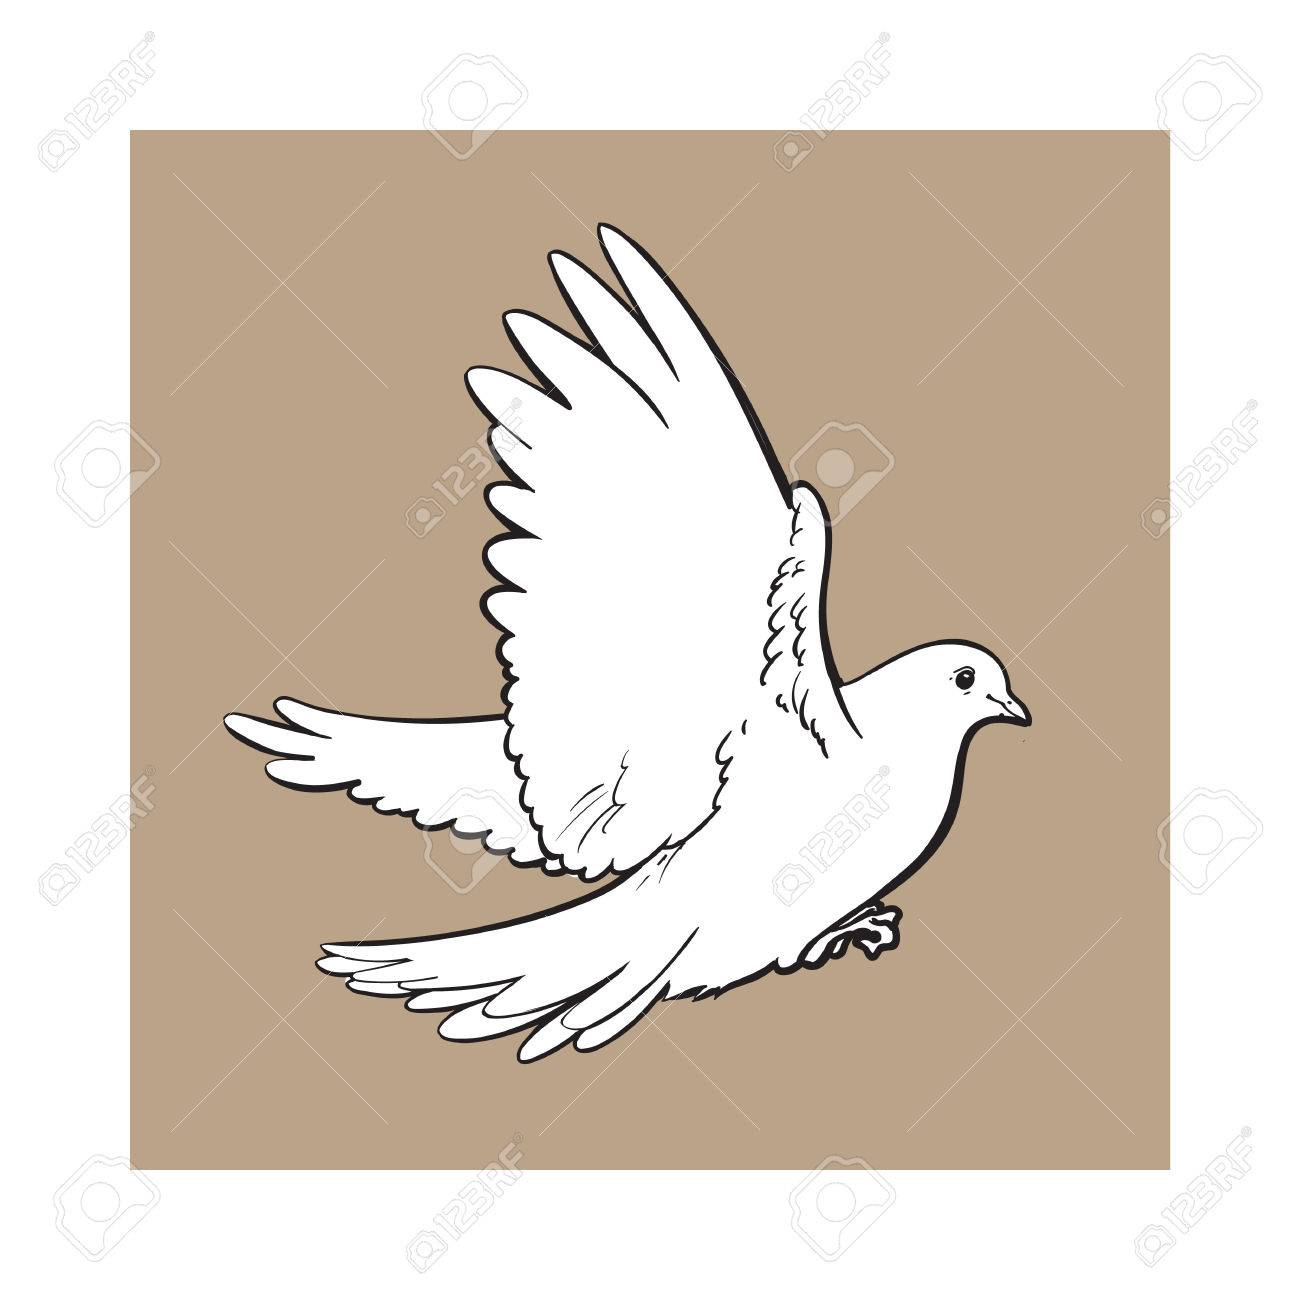 free flying white dove sketch style vector illustration isolated on brown background realistic hand